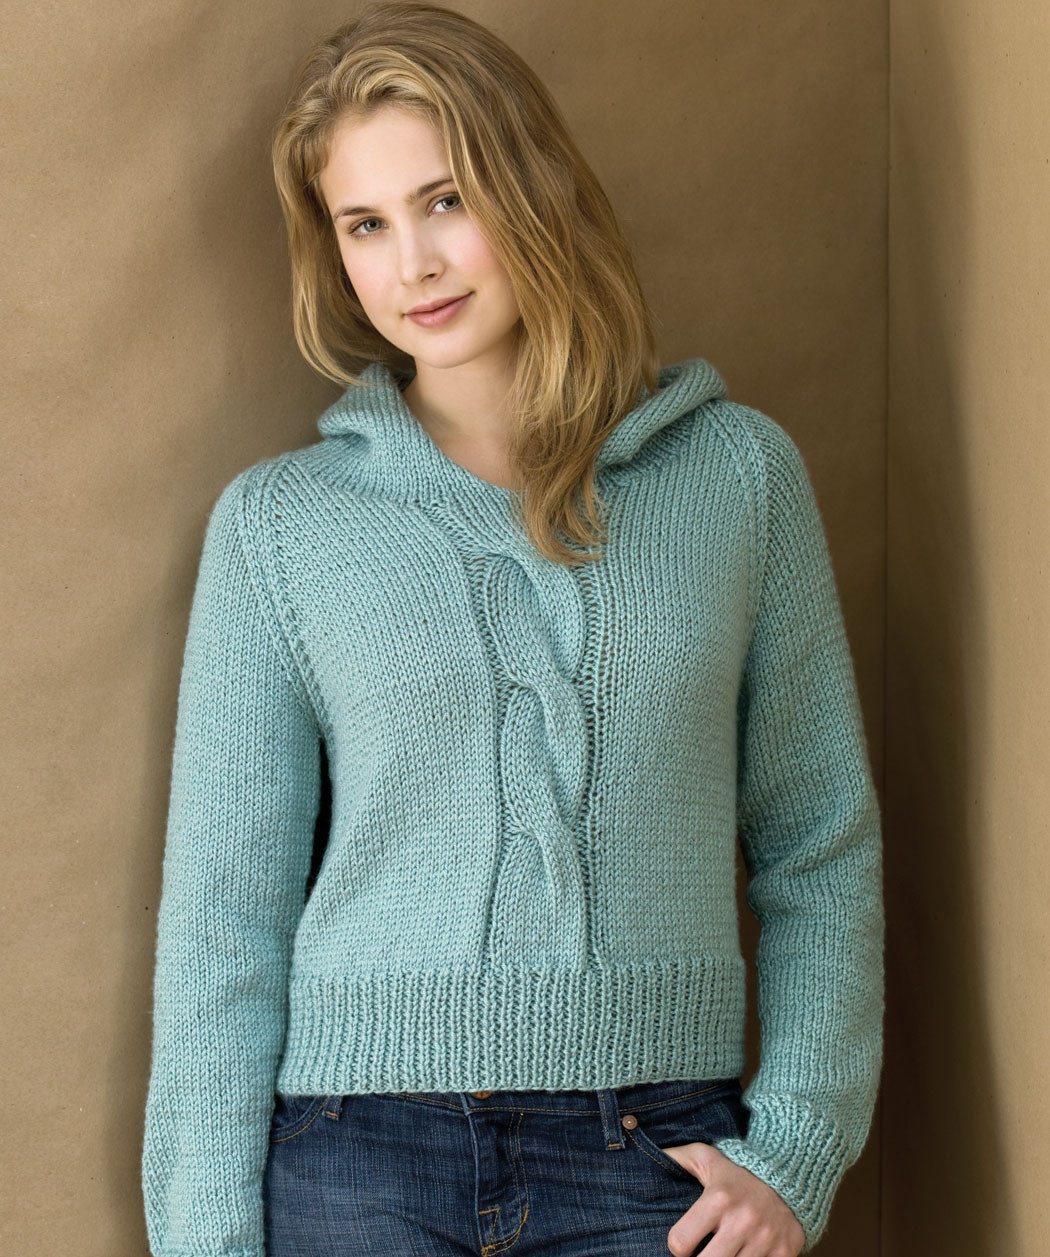 Sweater Knitting Patterns Best Of Cable Knit Sweater Patterns Of Amazing 42 Models Sweater Knitting Patterns